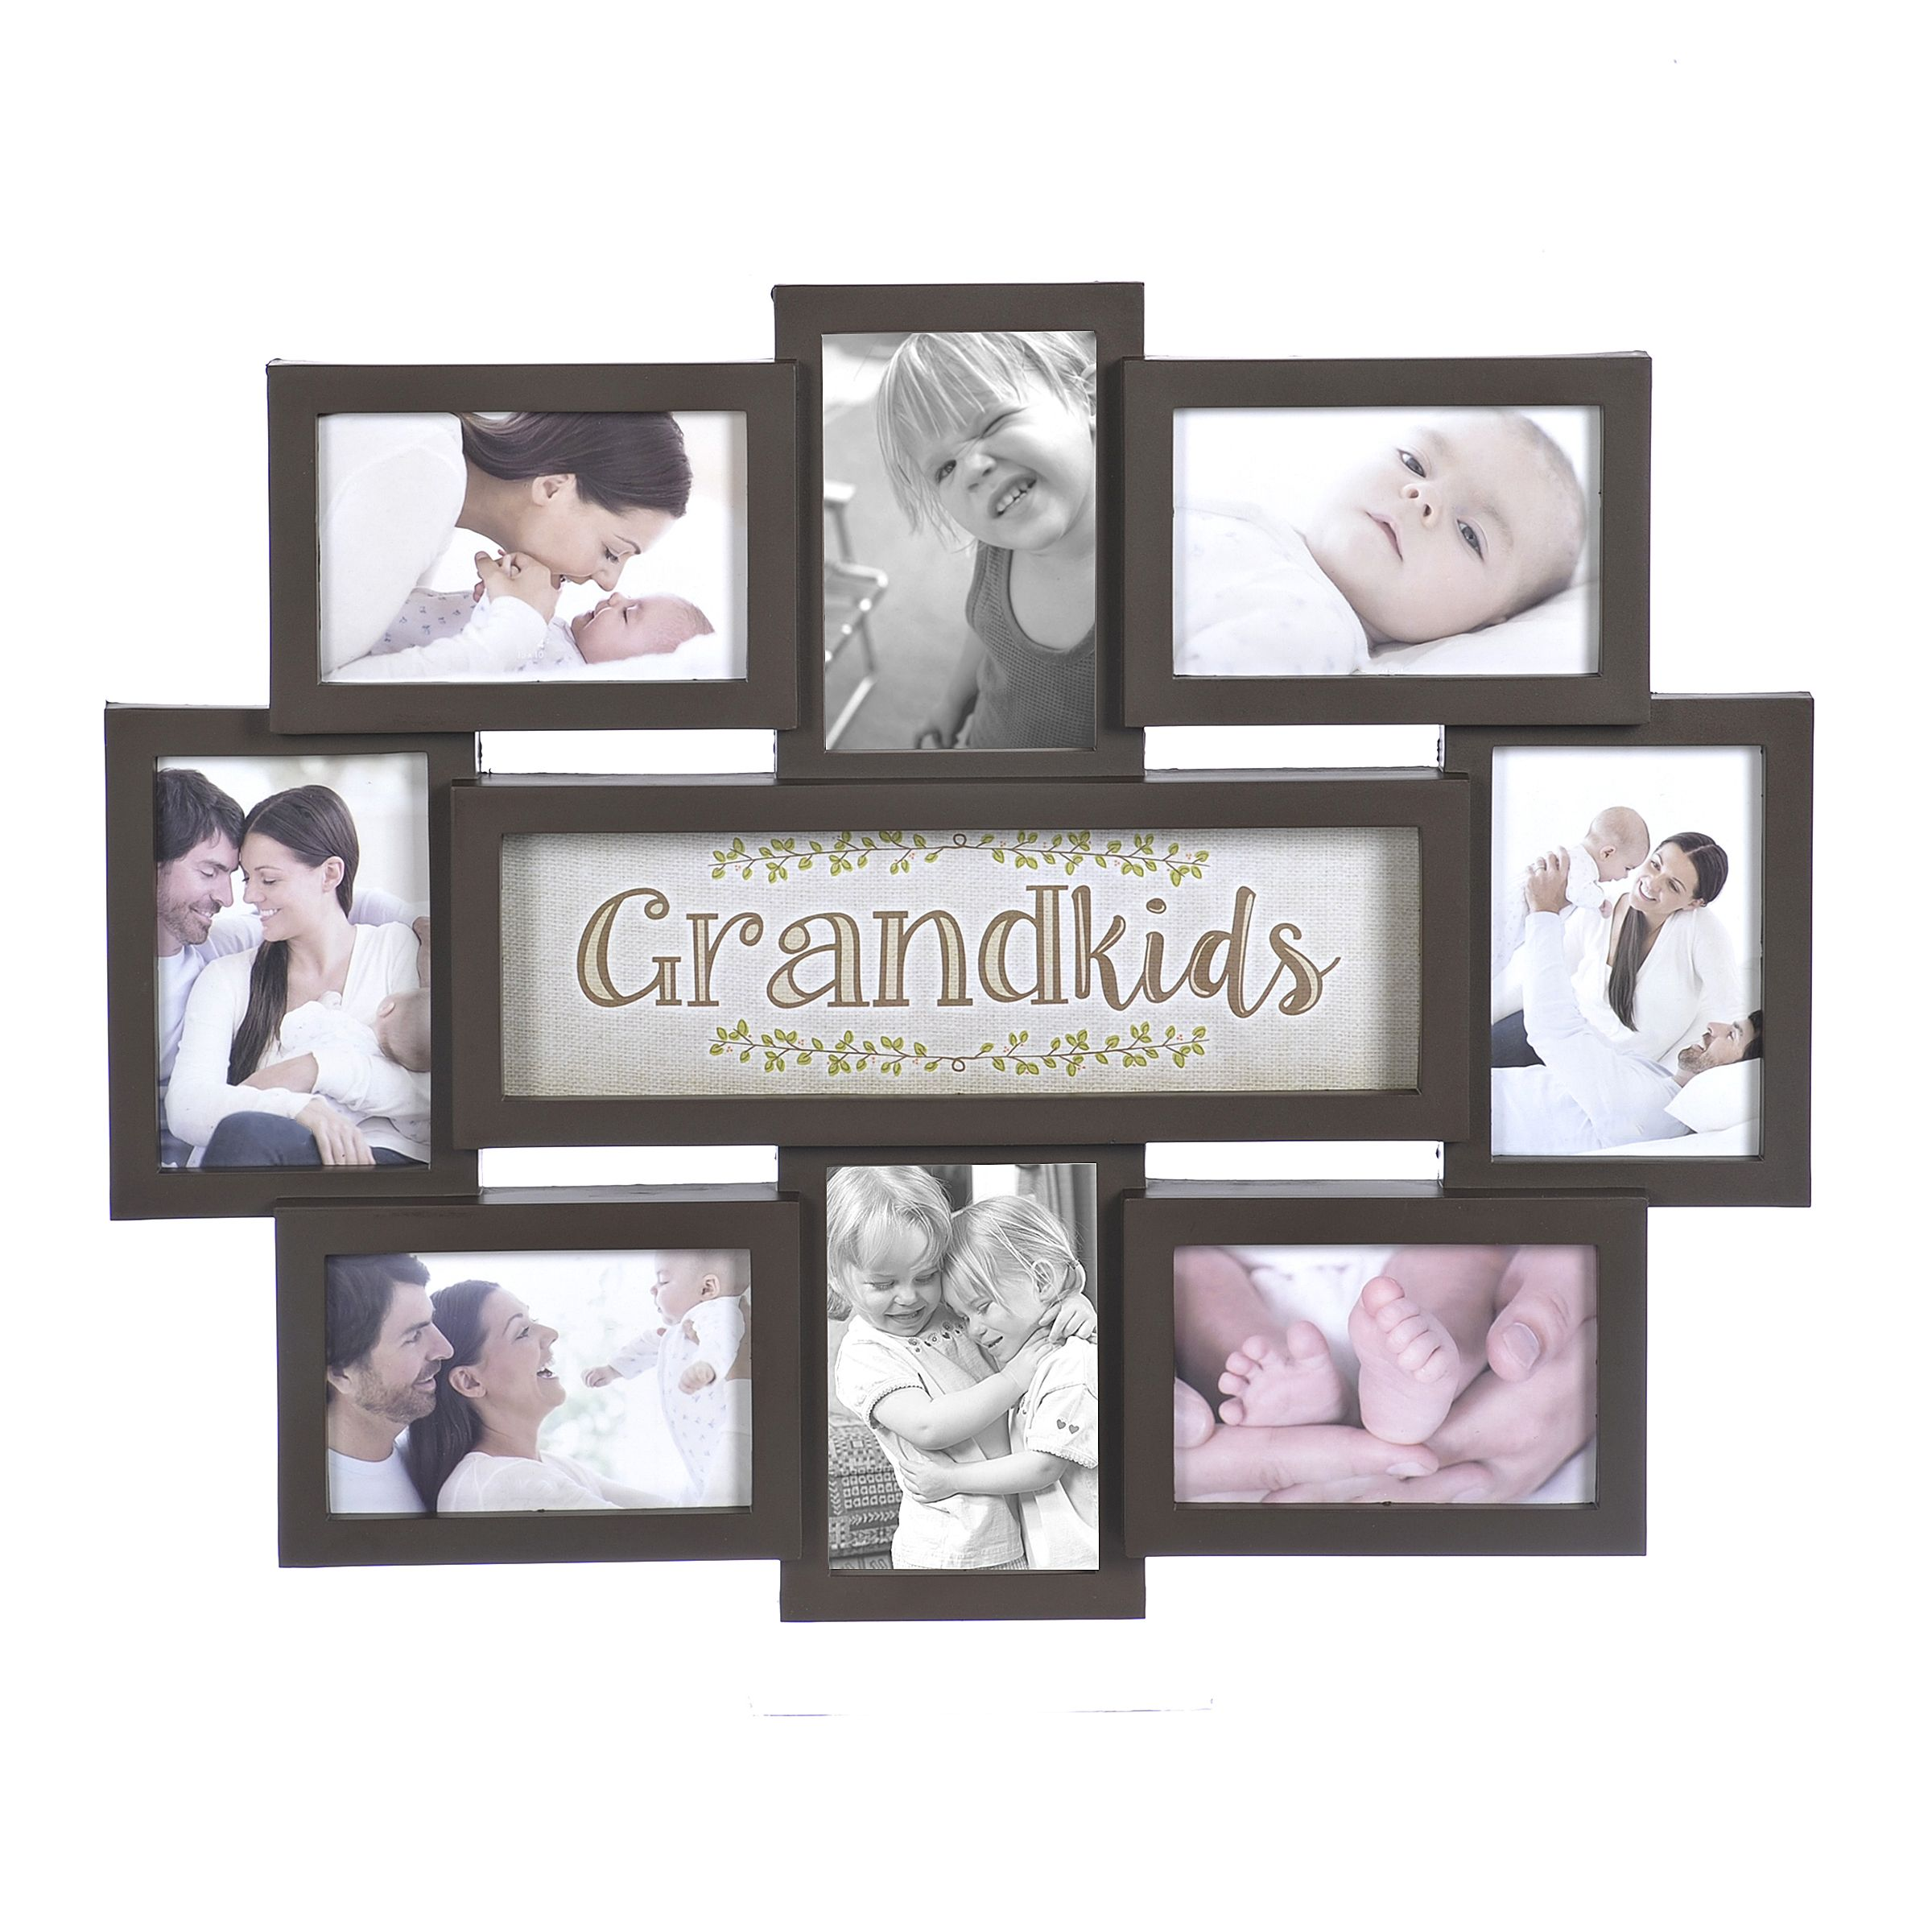 Grandkids 8-Opening Collage Frame in 2018 | HGTV | Pinterest ...